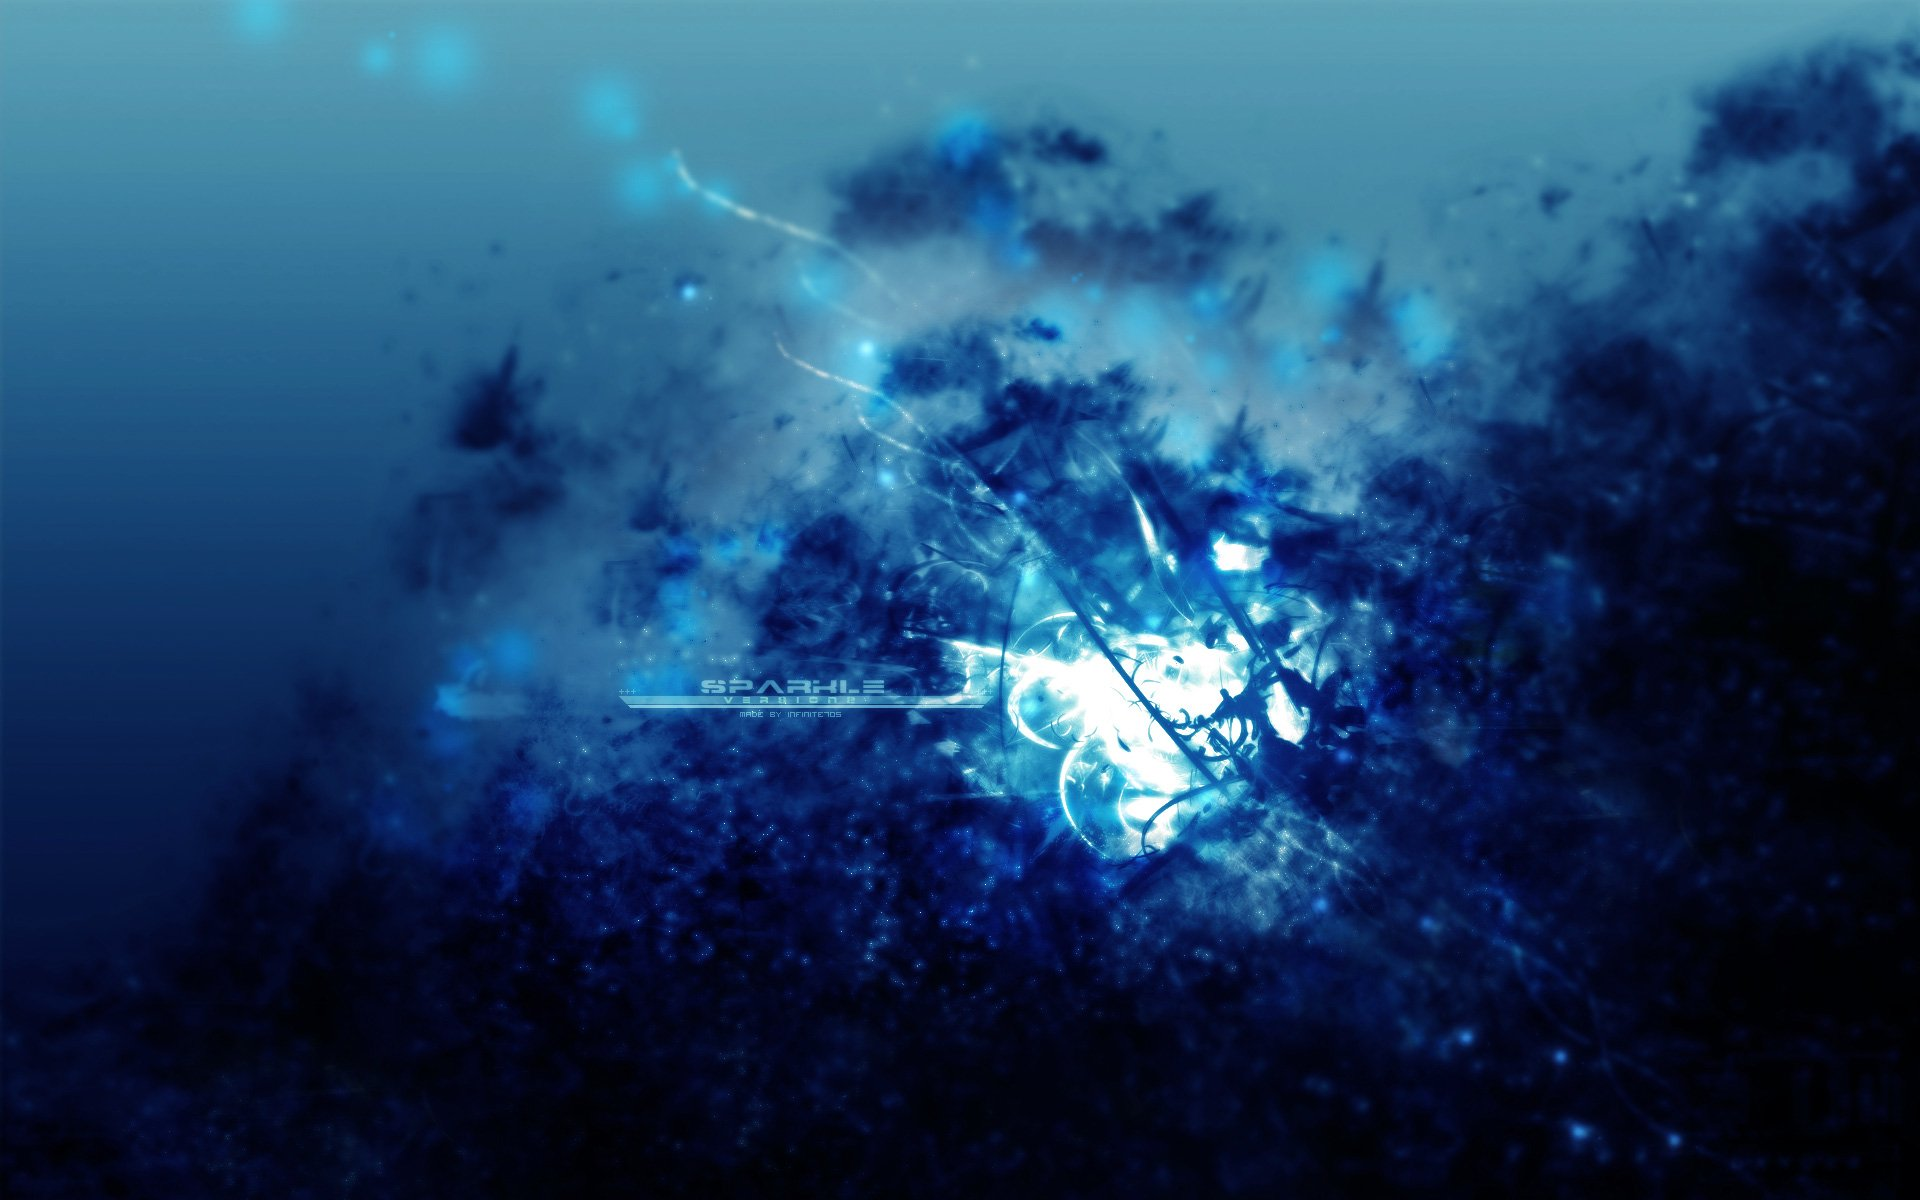 Abstract - Blue  Colors Shapes Pattern Texture Technology Abstract Artistic 3D CGI Digital Glow Wallpaper